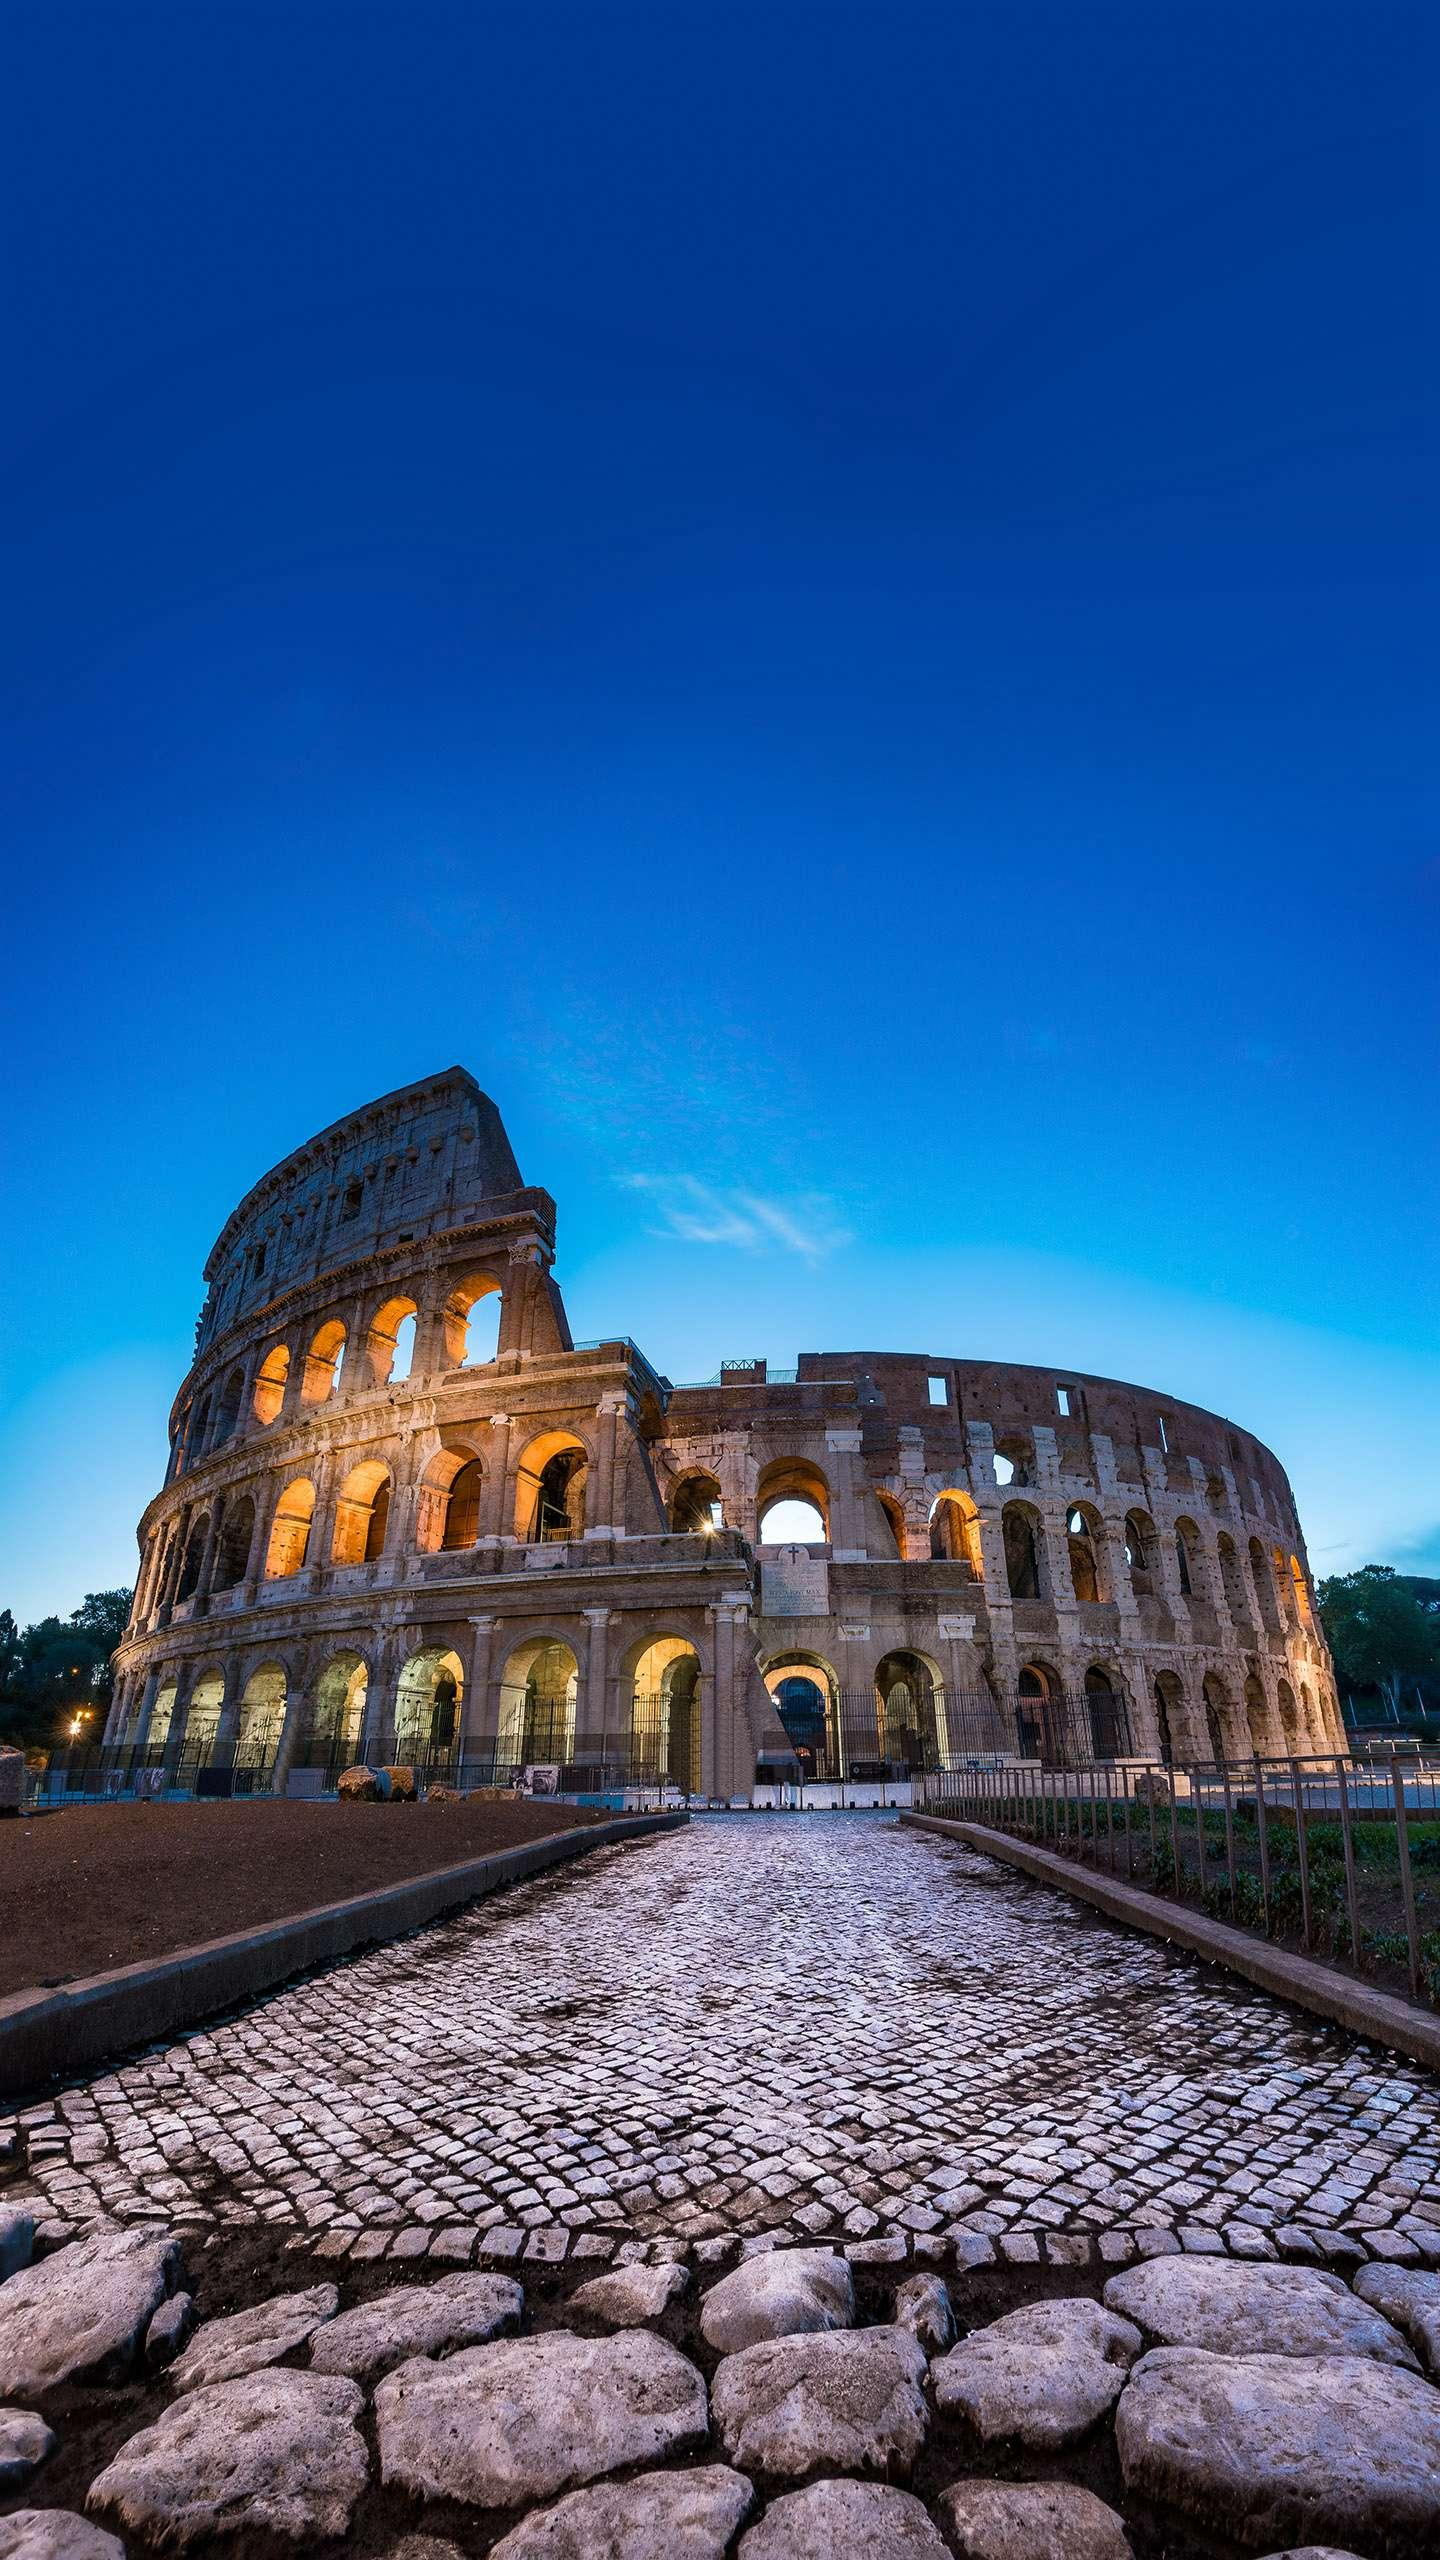 Colosseum in Rome. The masterpieces and miracles that are exemplary in the history of architecture are known for their vastness, majesty and grandeur.